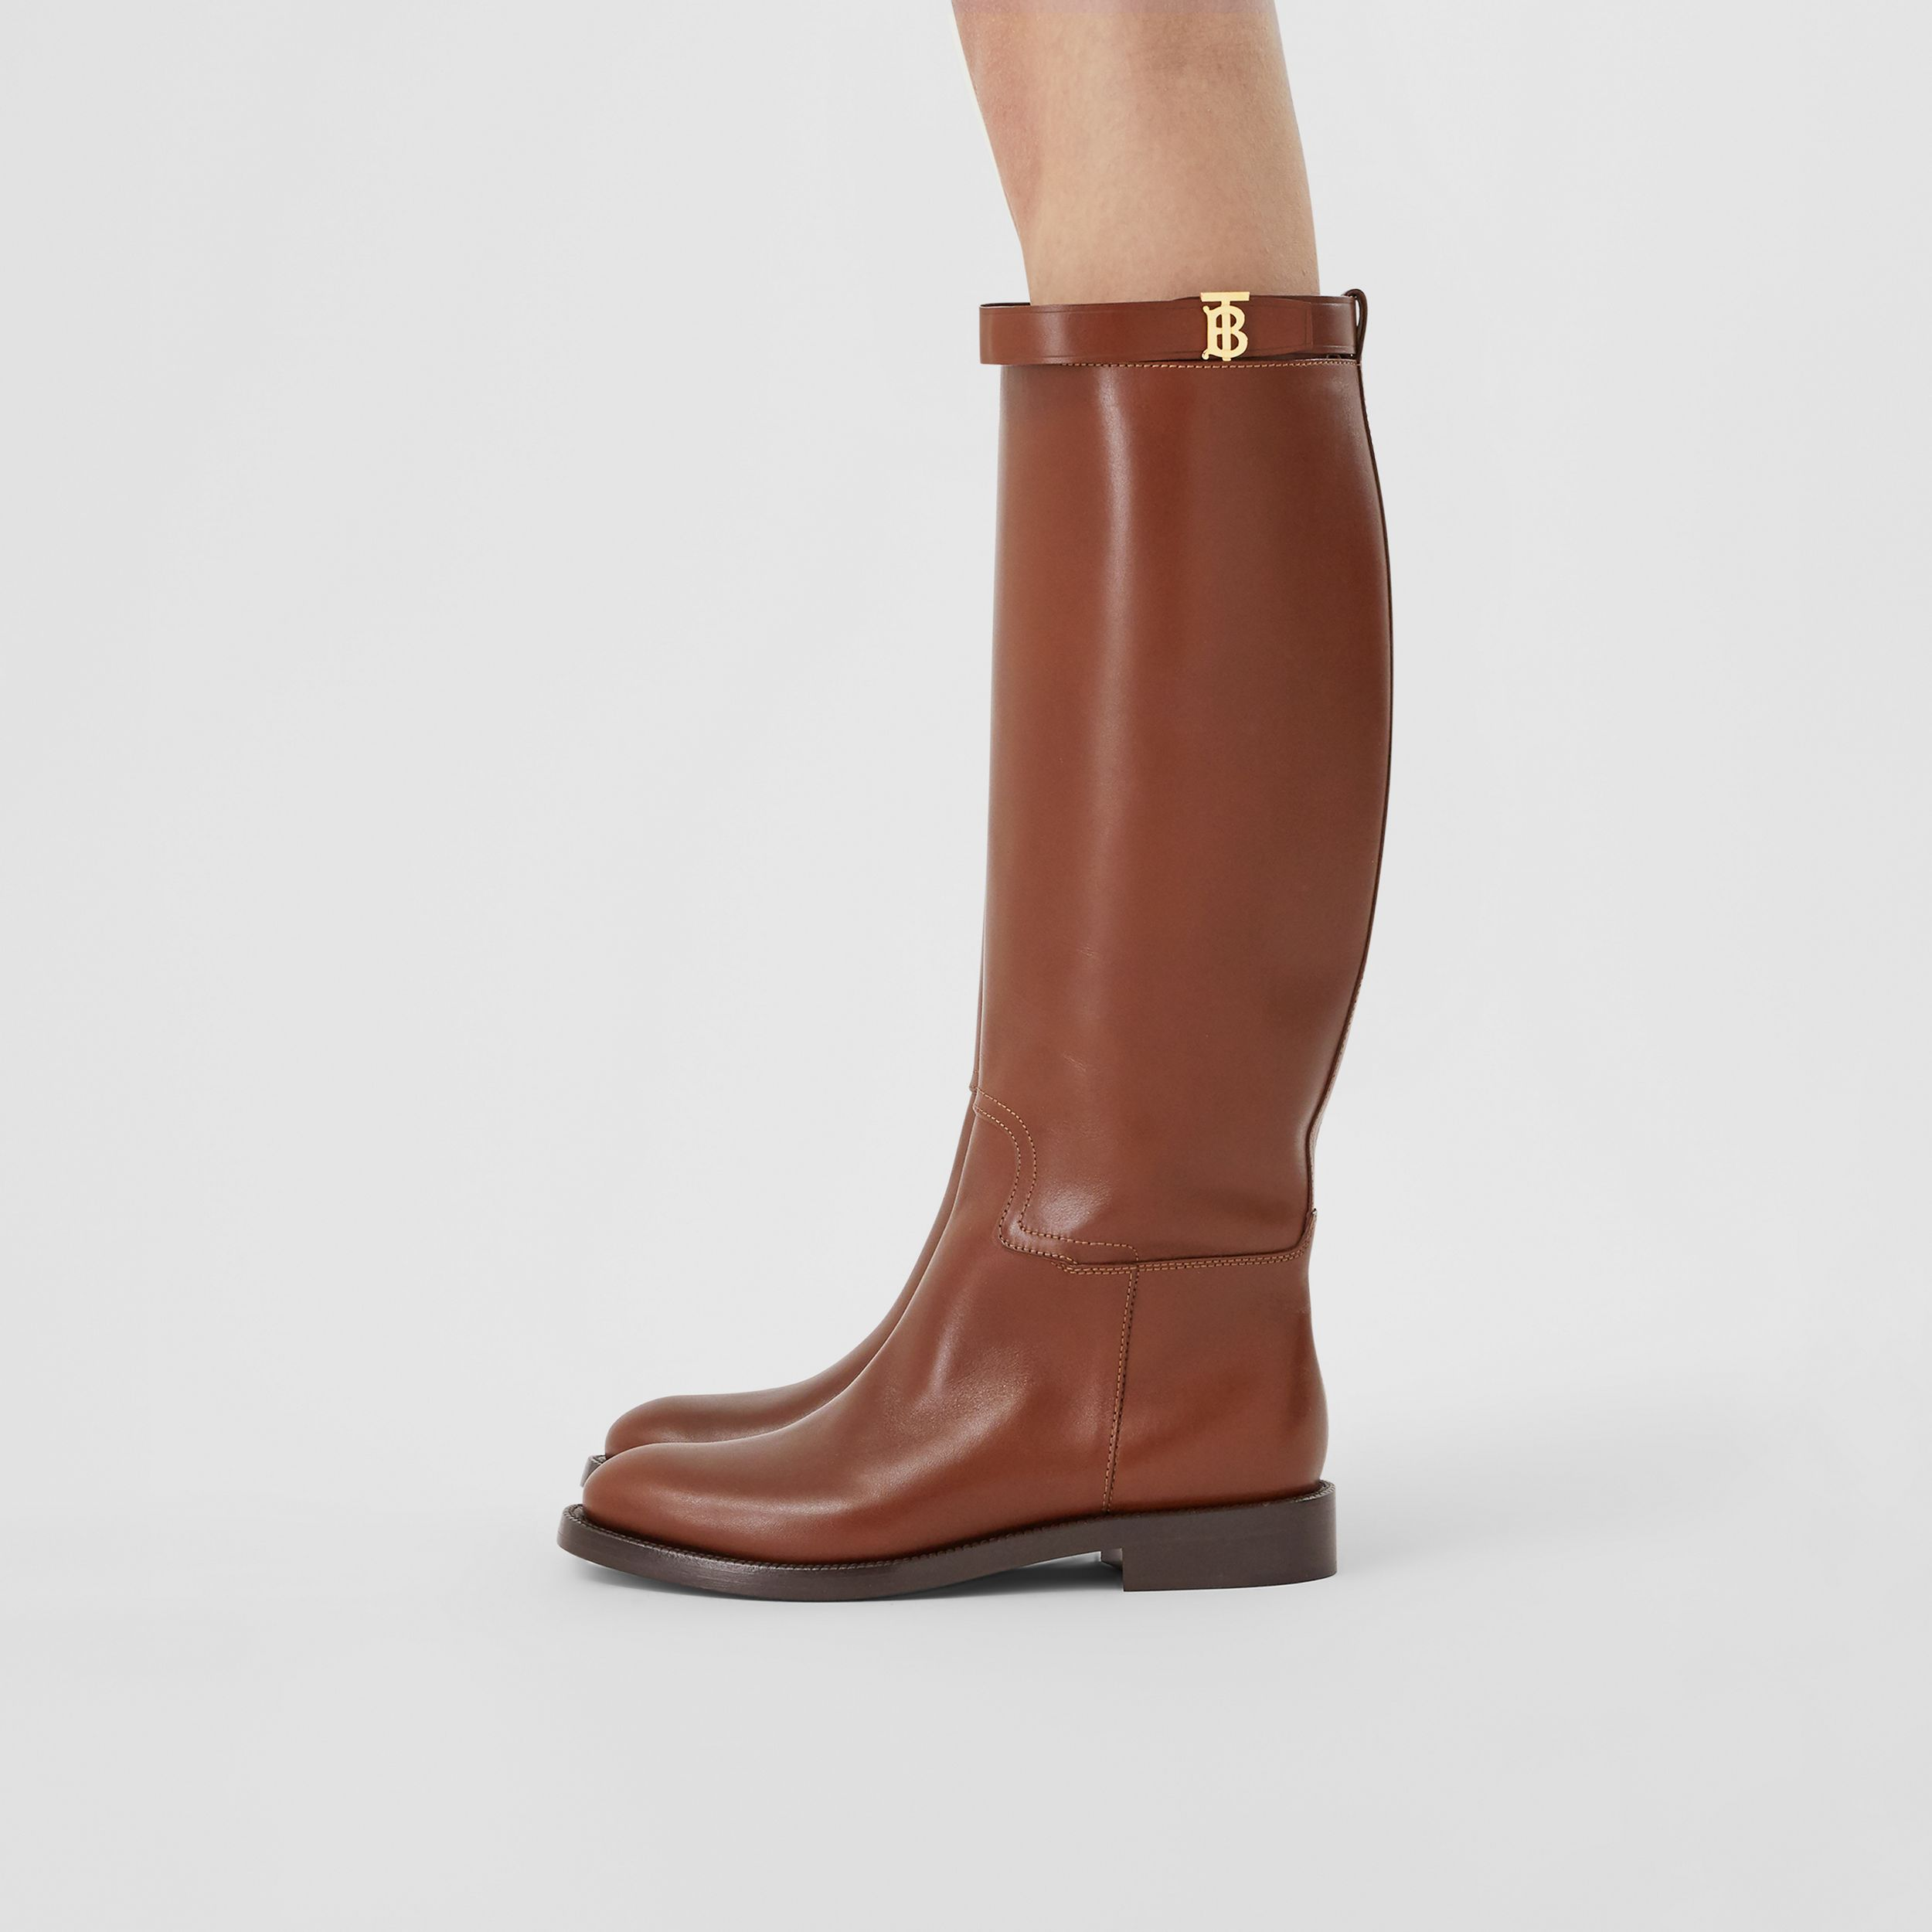 Monogram Motif Leather Knee-high Boots in Tan - Women | Burberry - 3